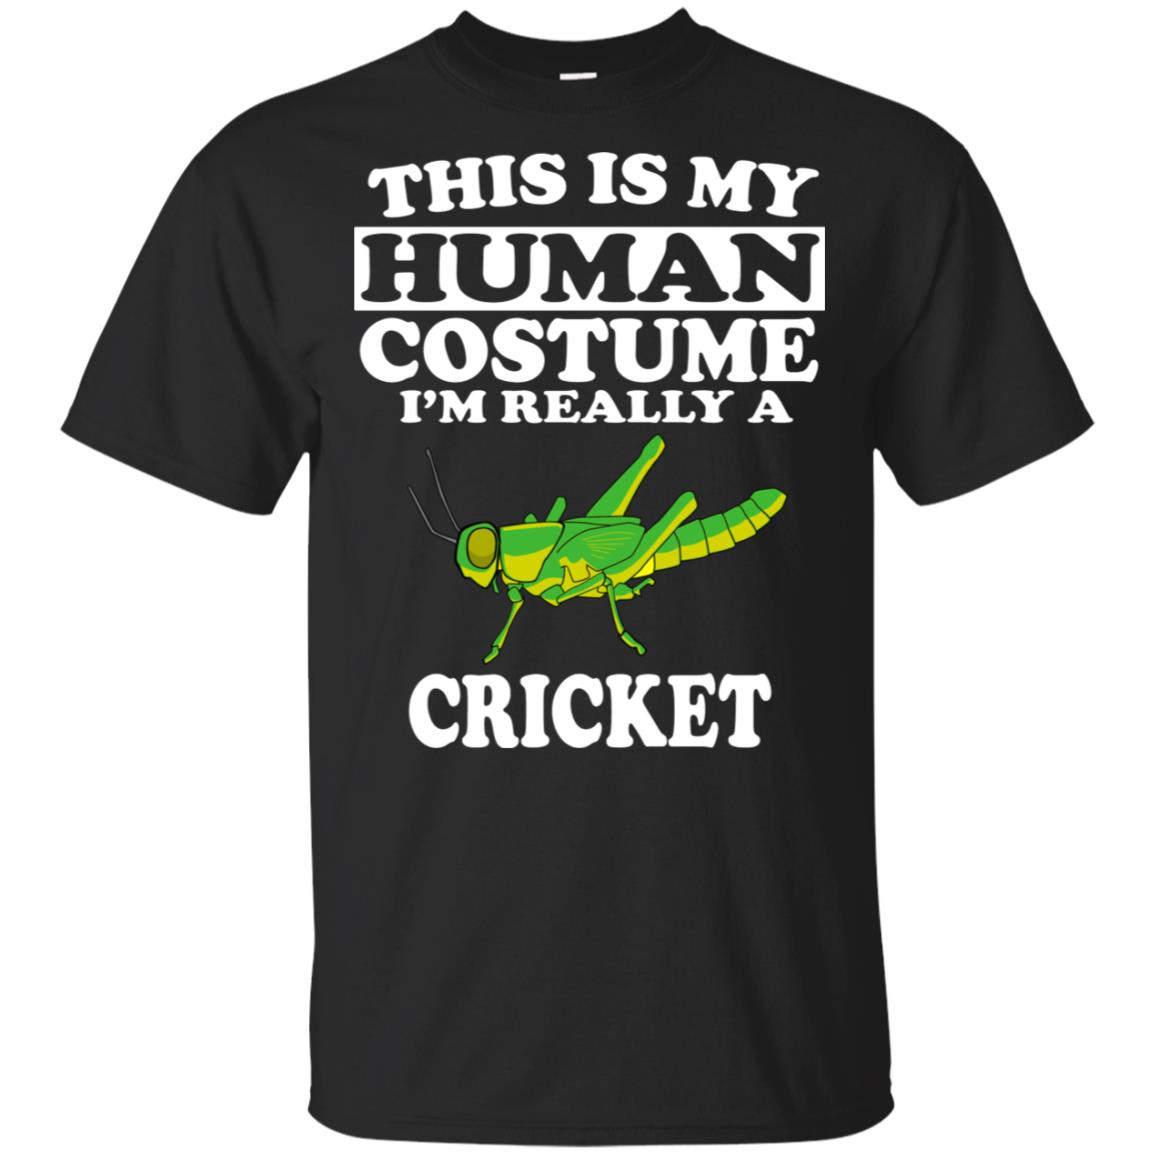 This Is My Human Costume I'm Really A Cricket Unisex Short Sleeve